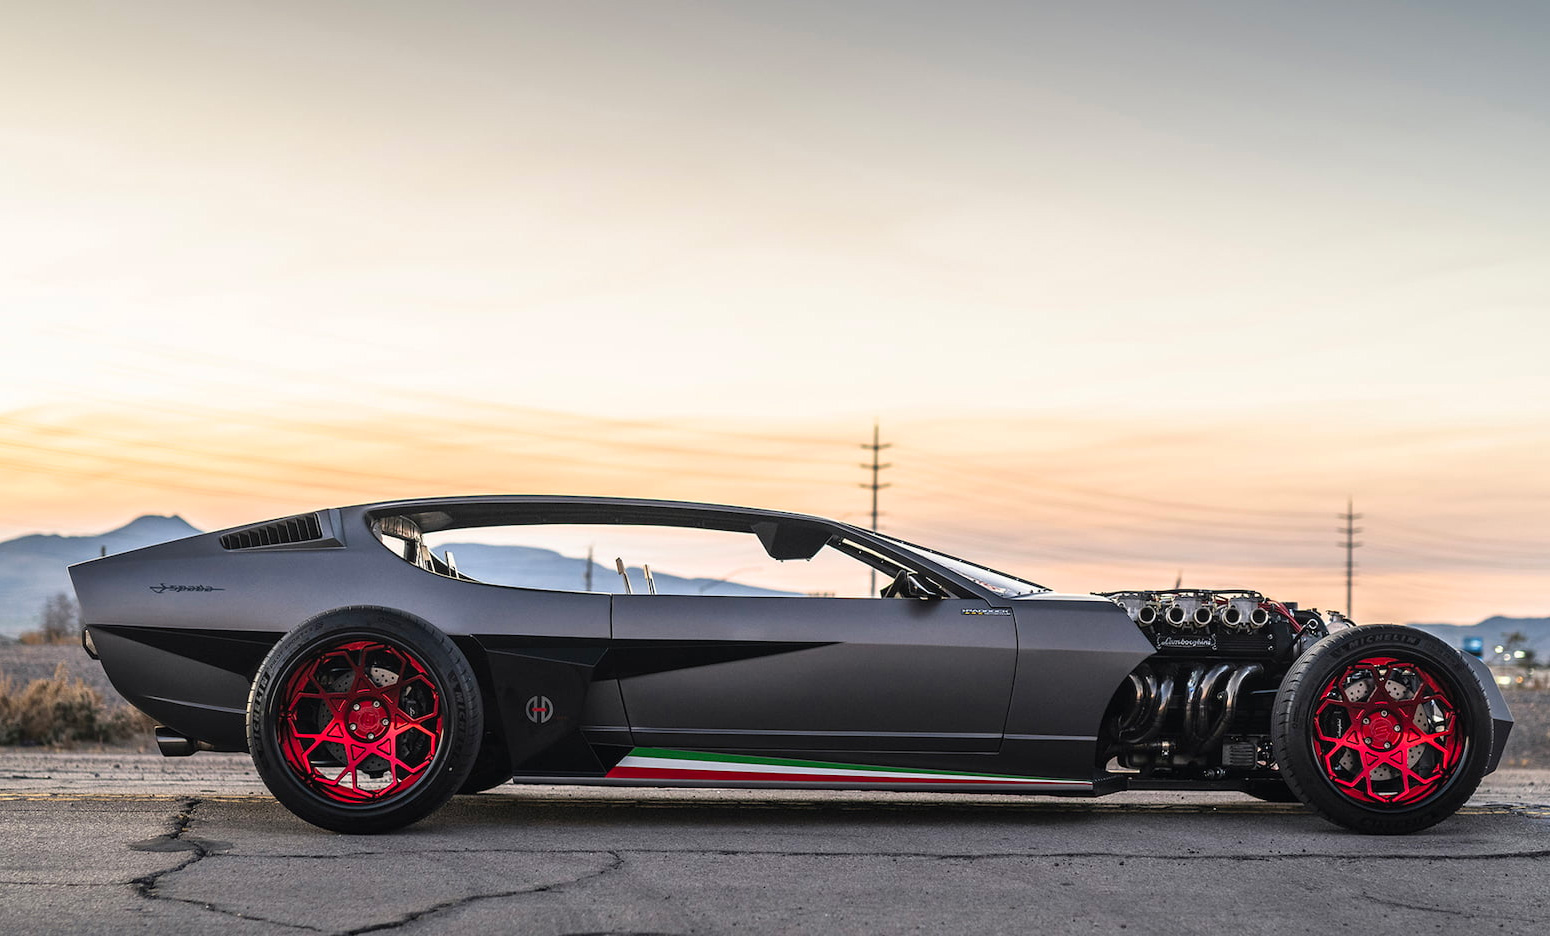 Kick Off the New Year with Your Very Own Lamborghini Rat Rod at werd.com